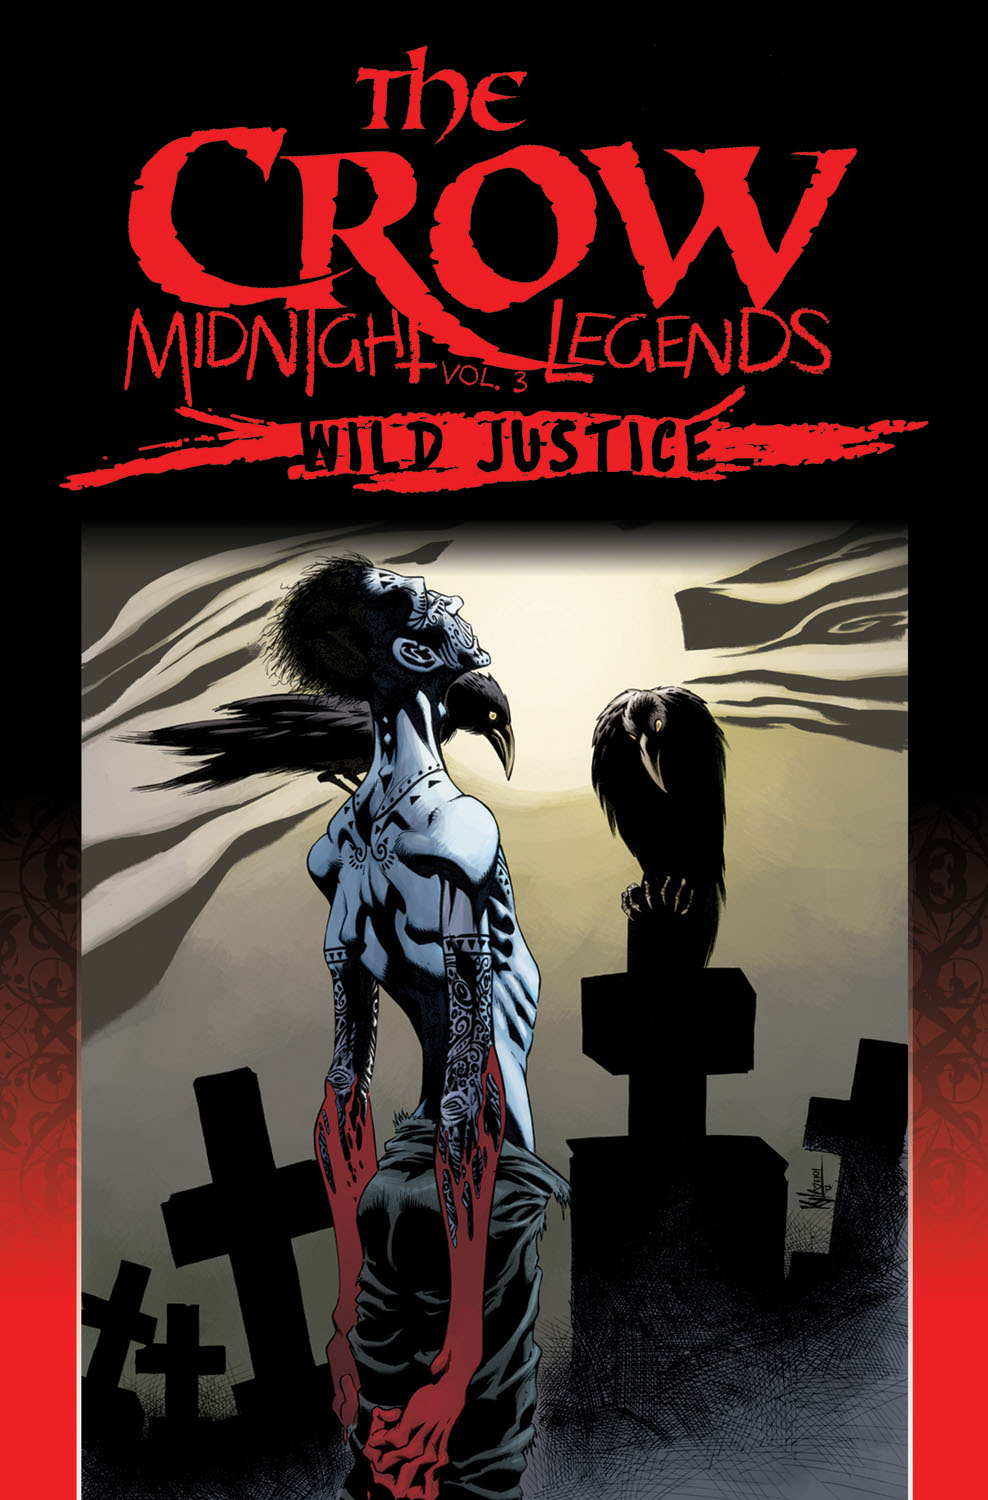 The Crow: Midnight Legends Vol. 3